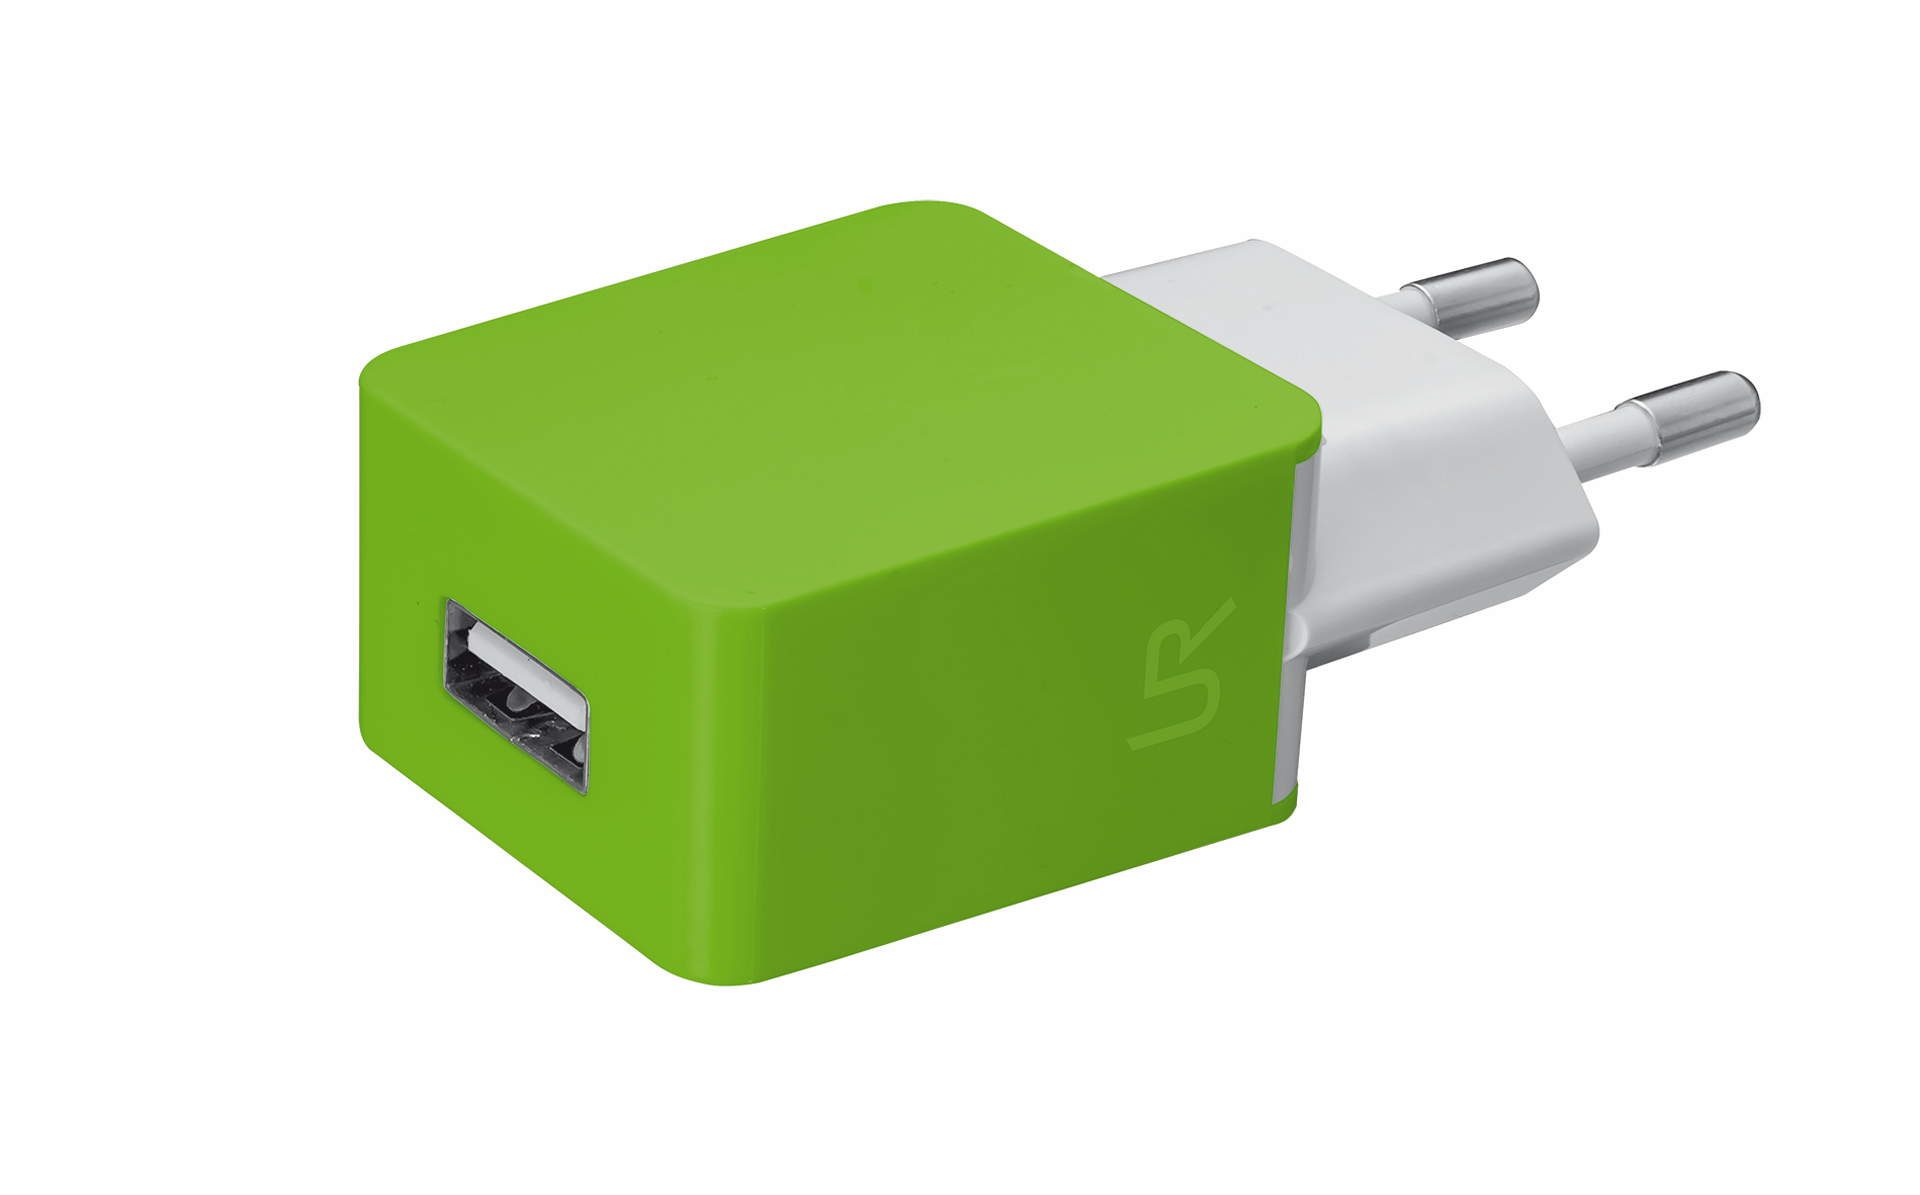 Universal Smartphone Charger - Home - lime